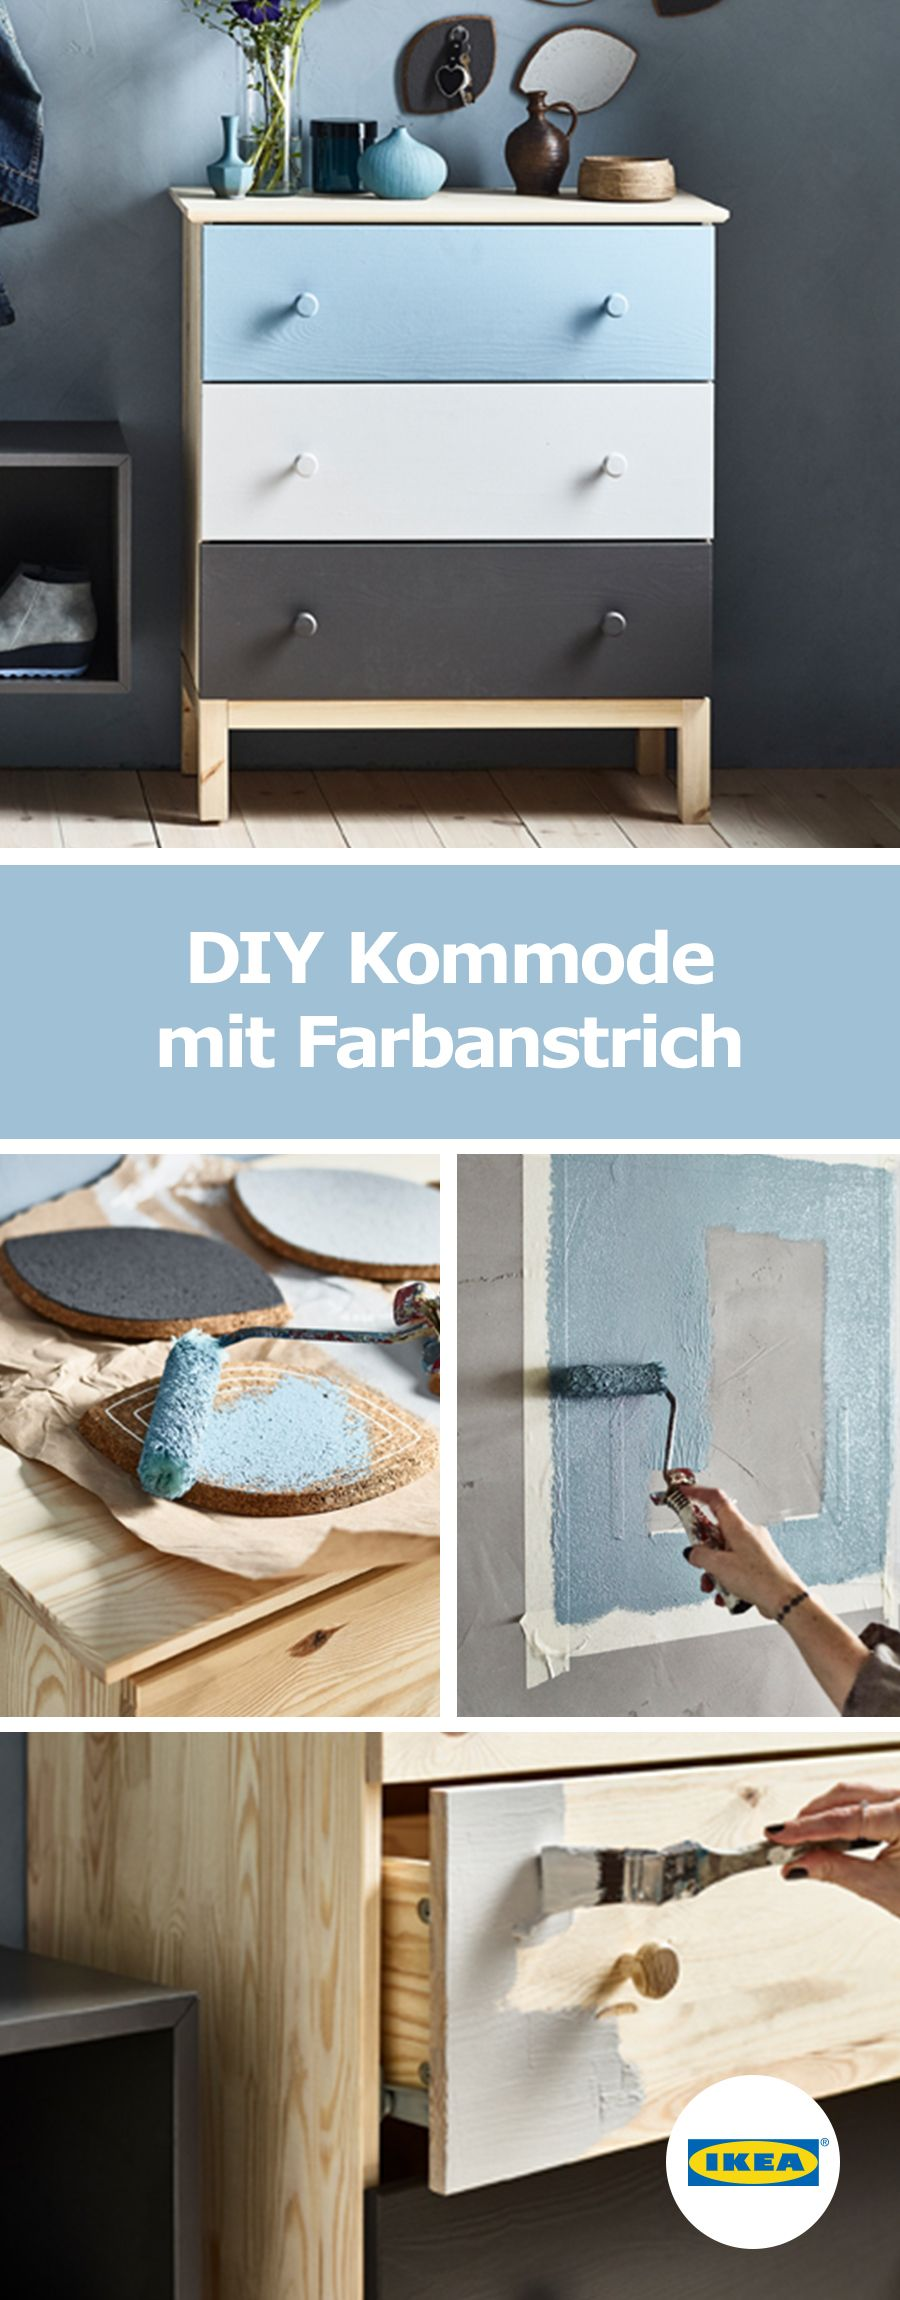 ikea deutschland diy kommode mit farbanstrich ikea hacks pinterest ikea deutschland. Black Bedroom Furniture Sets. Home Design Ideas